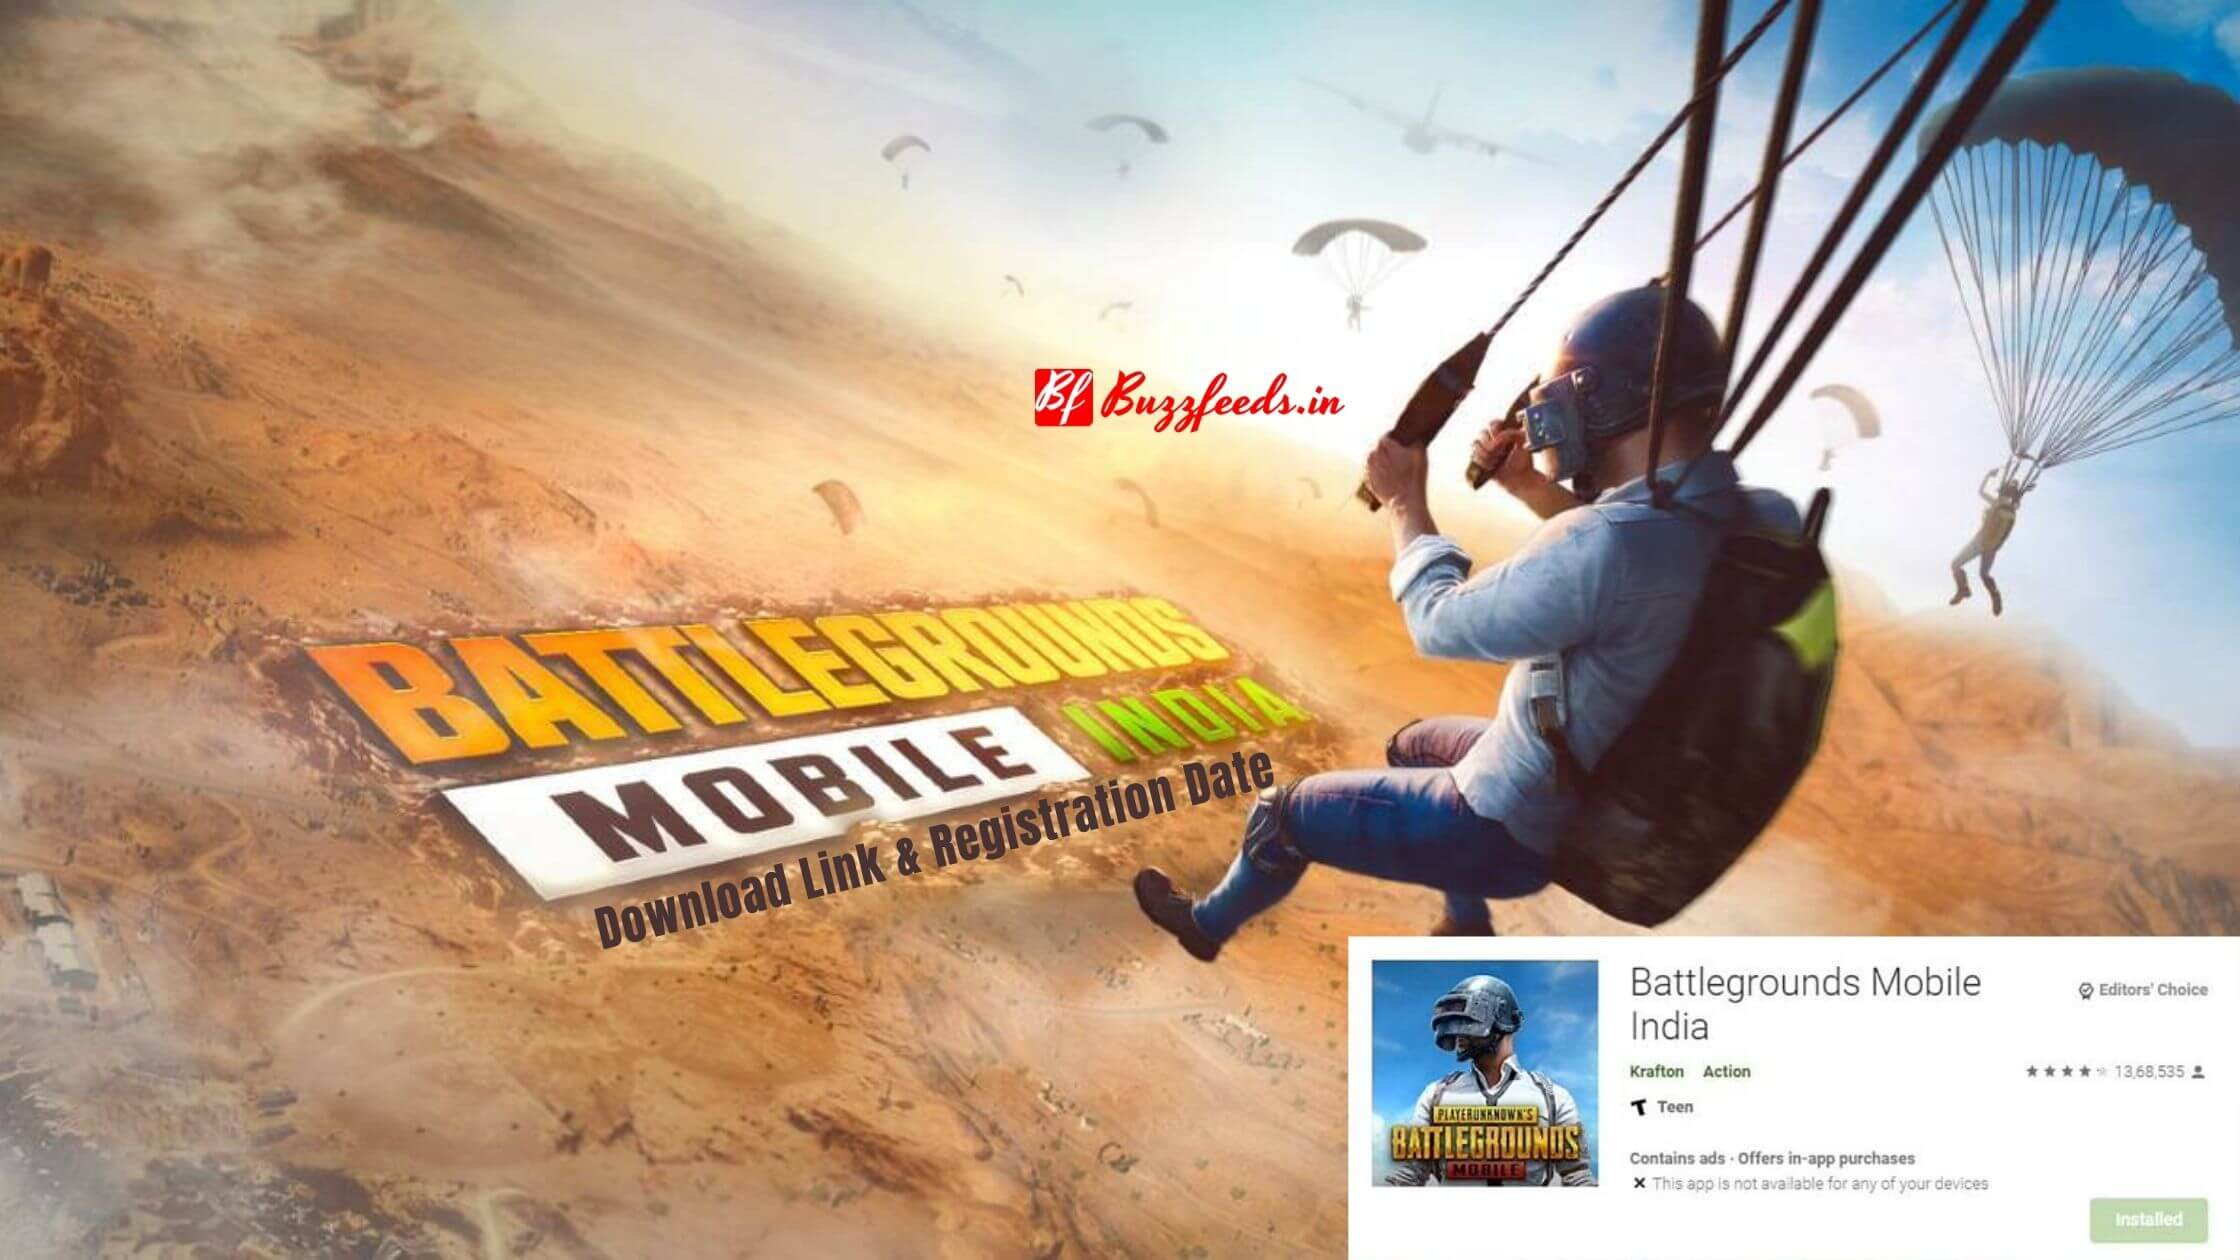 You are currently viewing Battlegrounds Mobile India APK Download Link & Registration Date